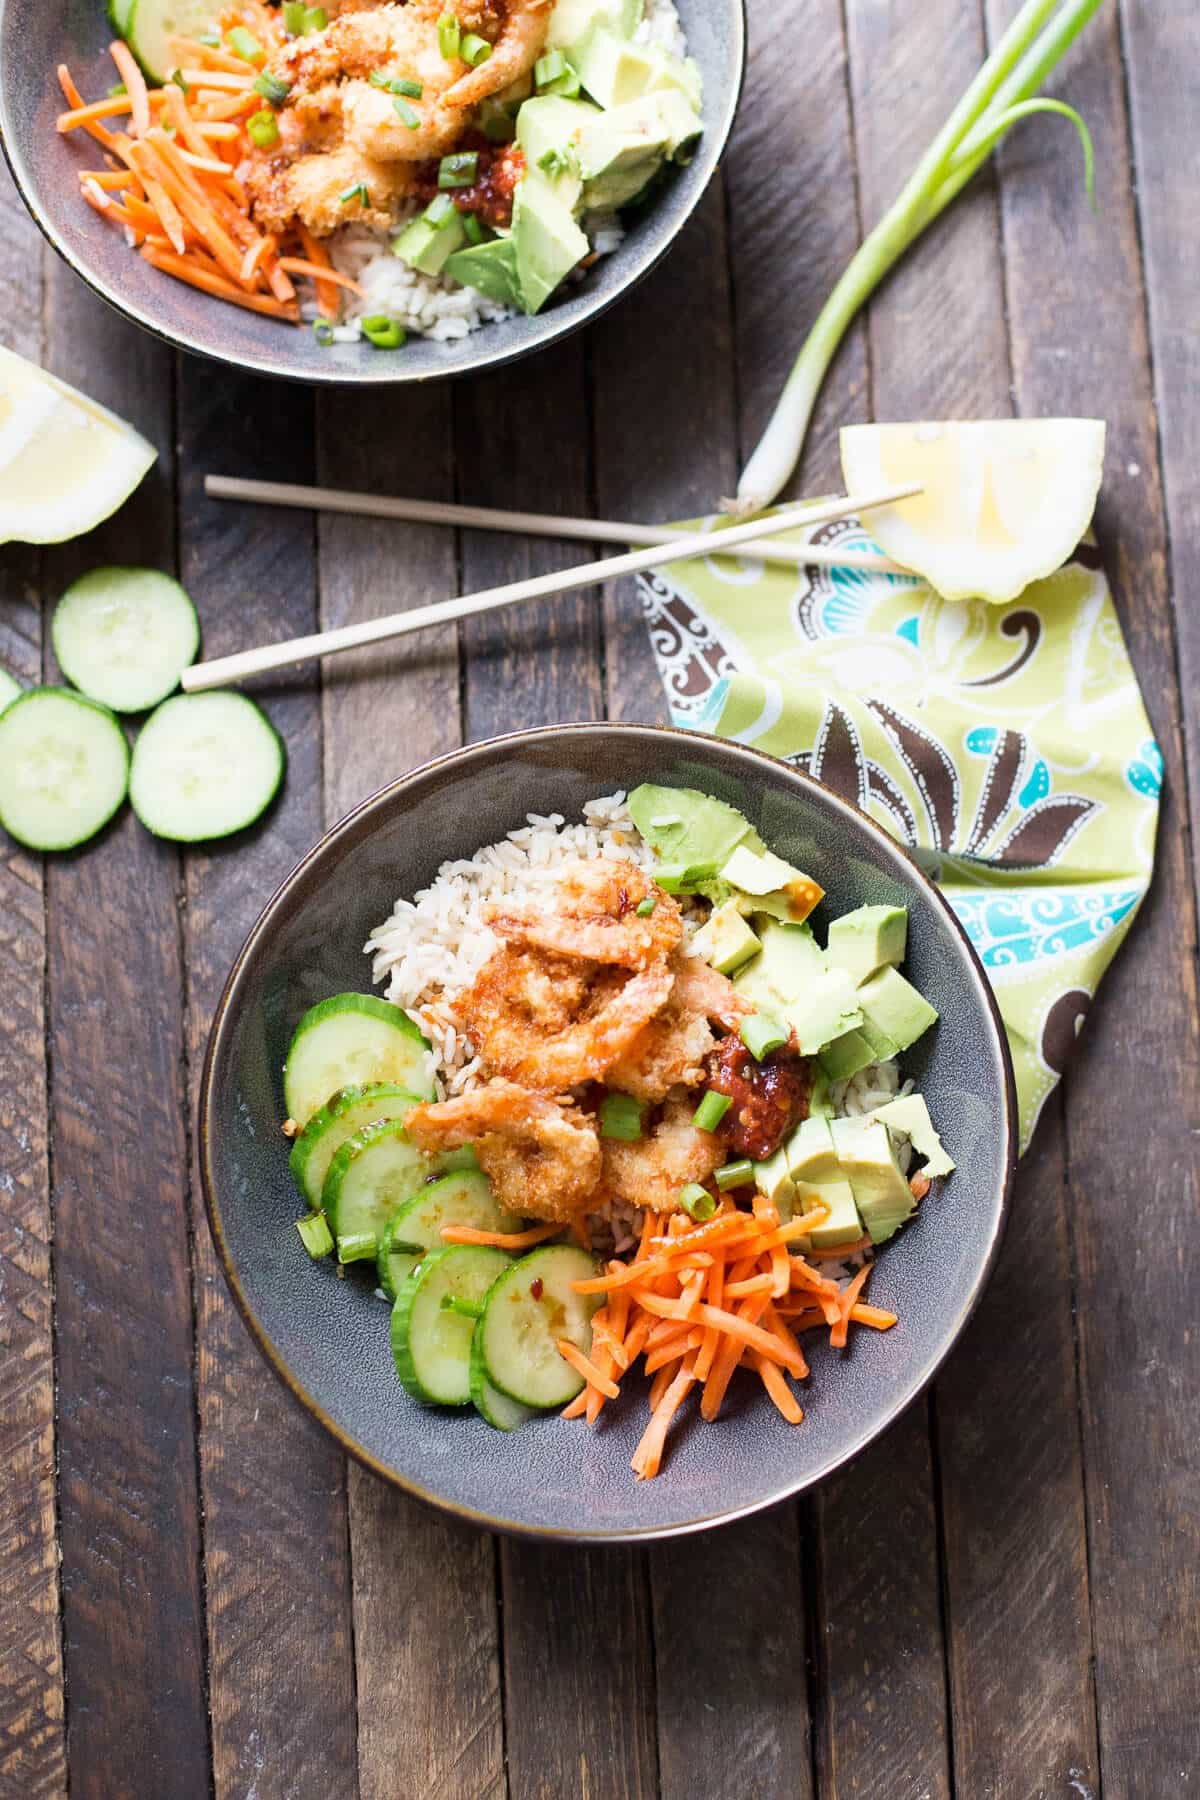 Breaded shrimp, veggies and a spicy sweet sauce make this sushi bowl absolutely delicious!